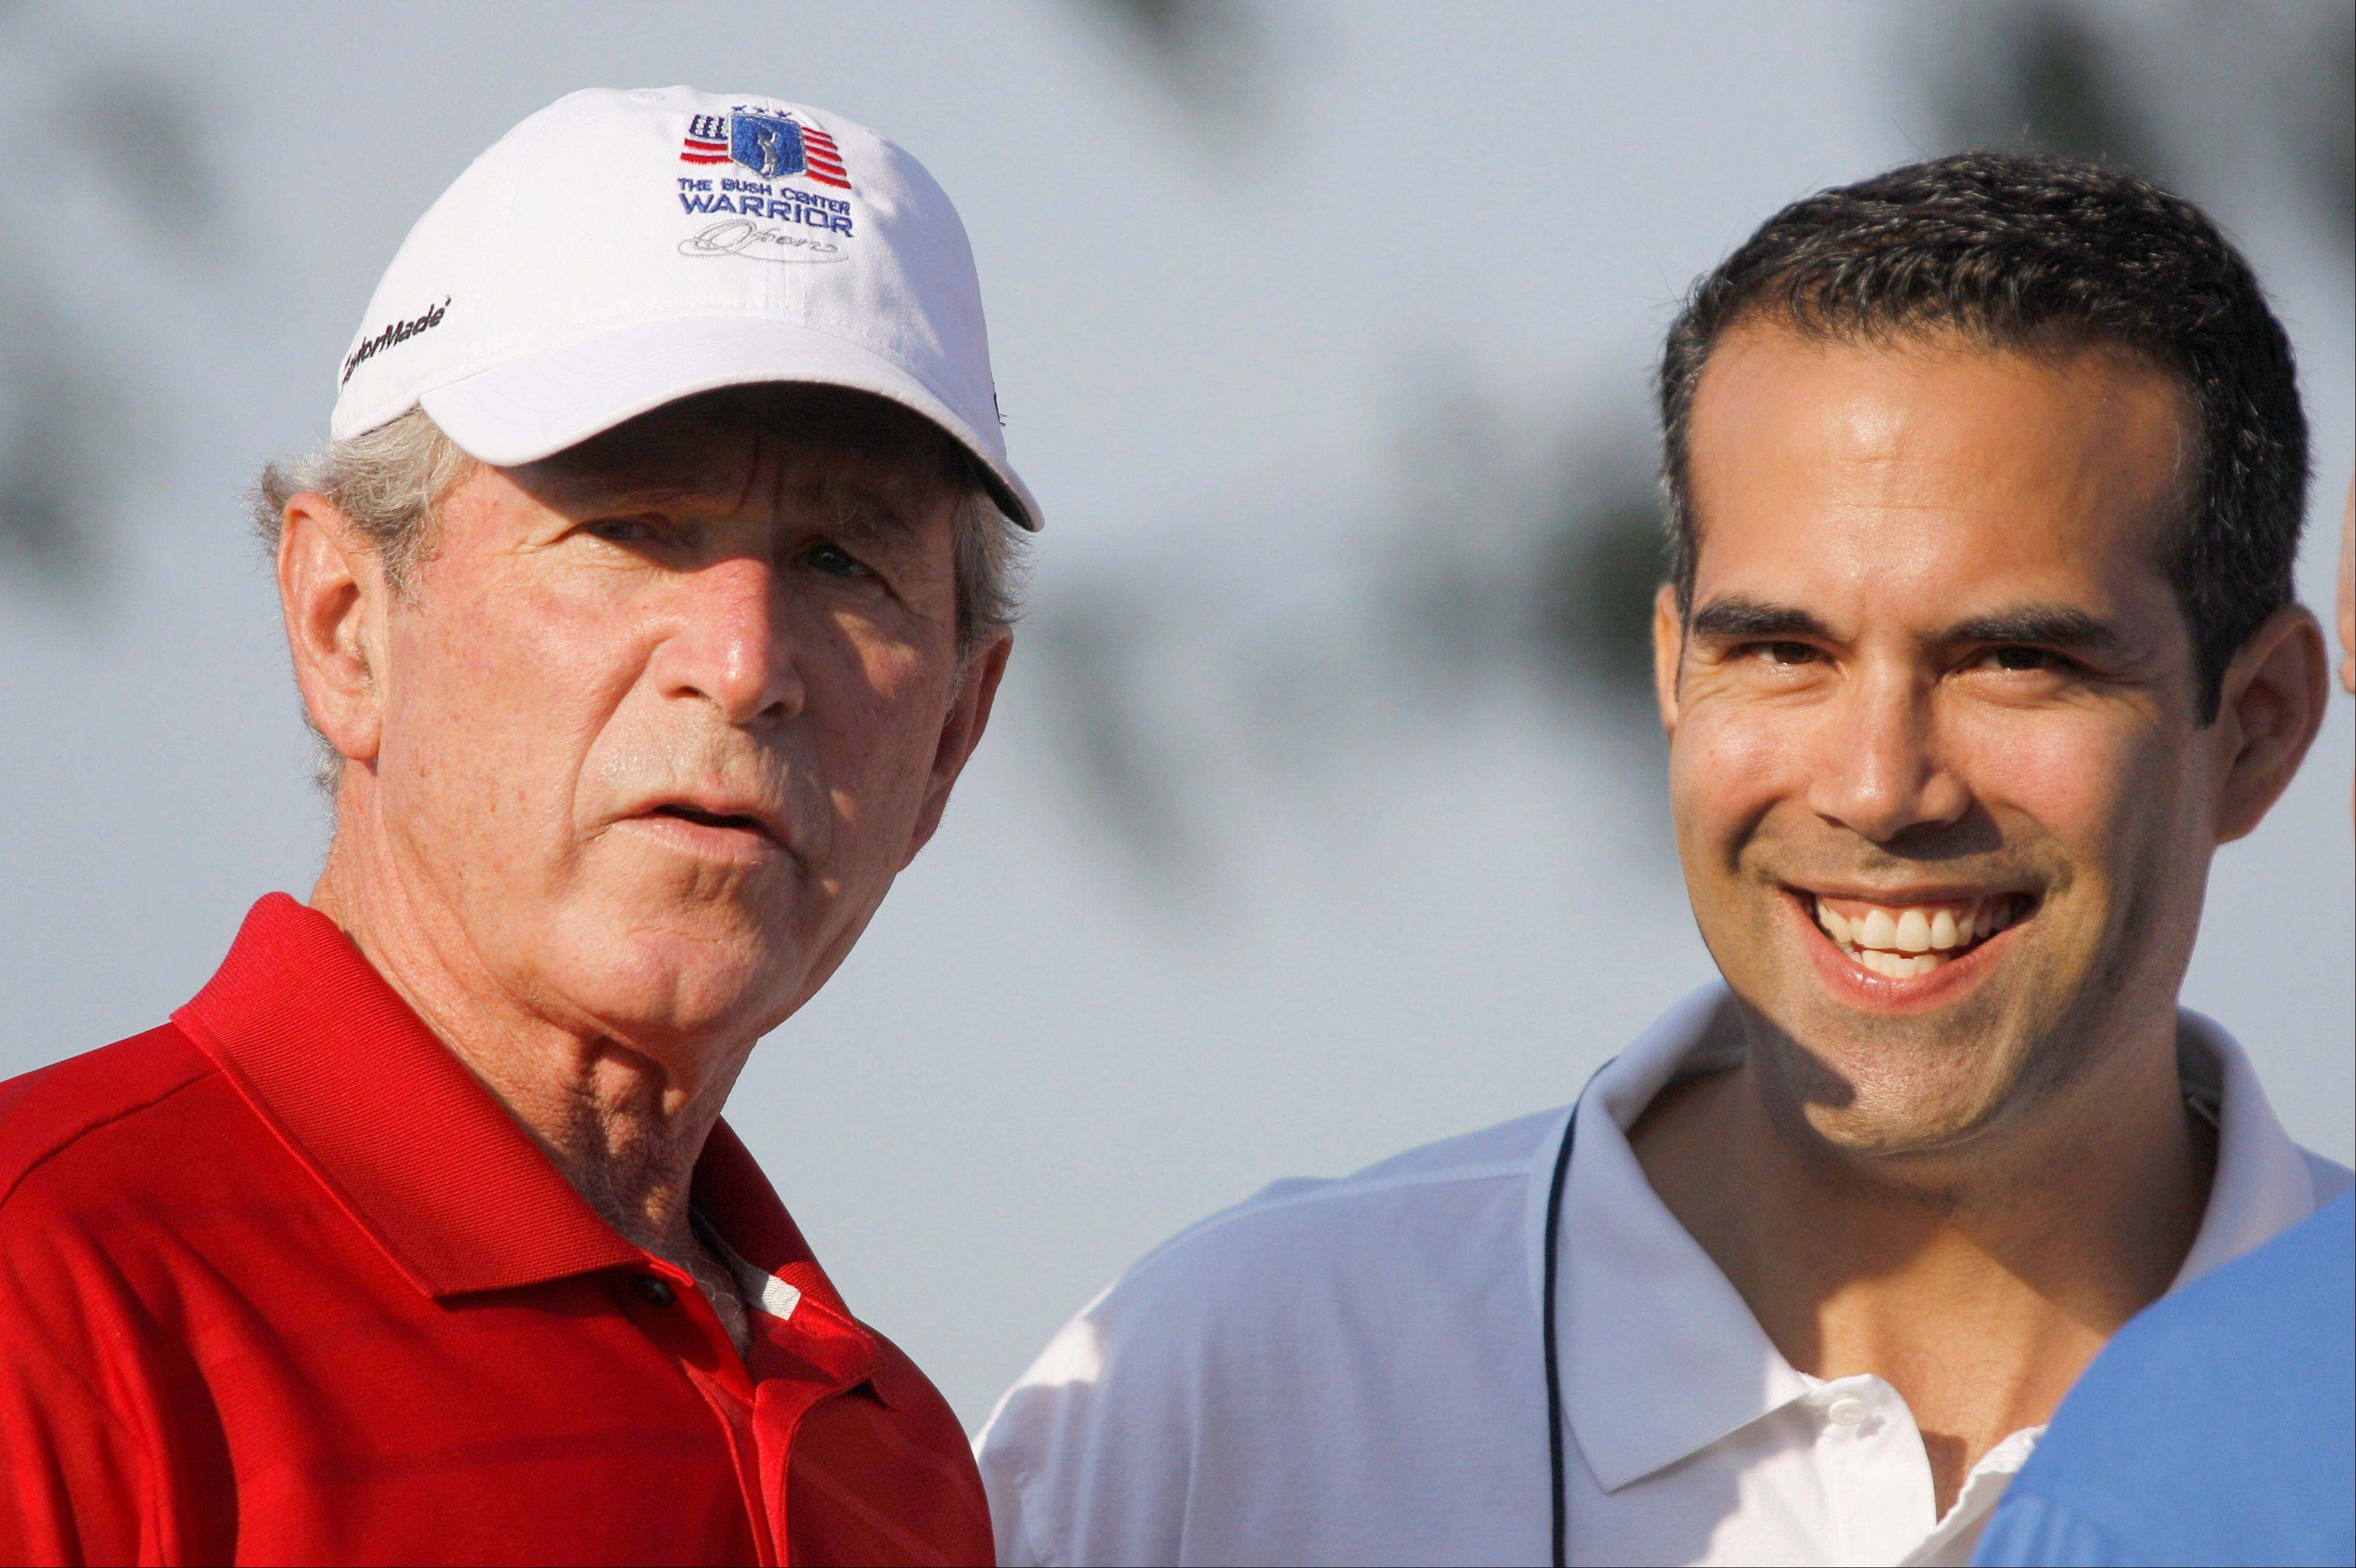 Associated Press/Sept. 24, 2012 George P. Bush, right, stands with his uncle former President George W. Bush, left, during the Bush Center Warrior Open in Irving, Texas.